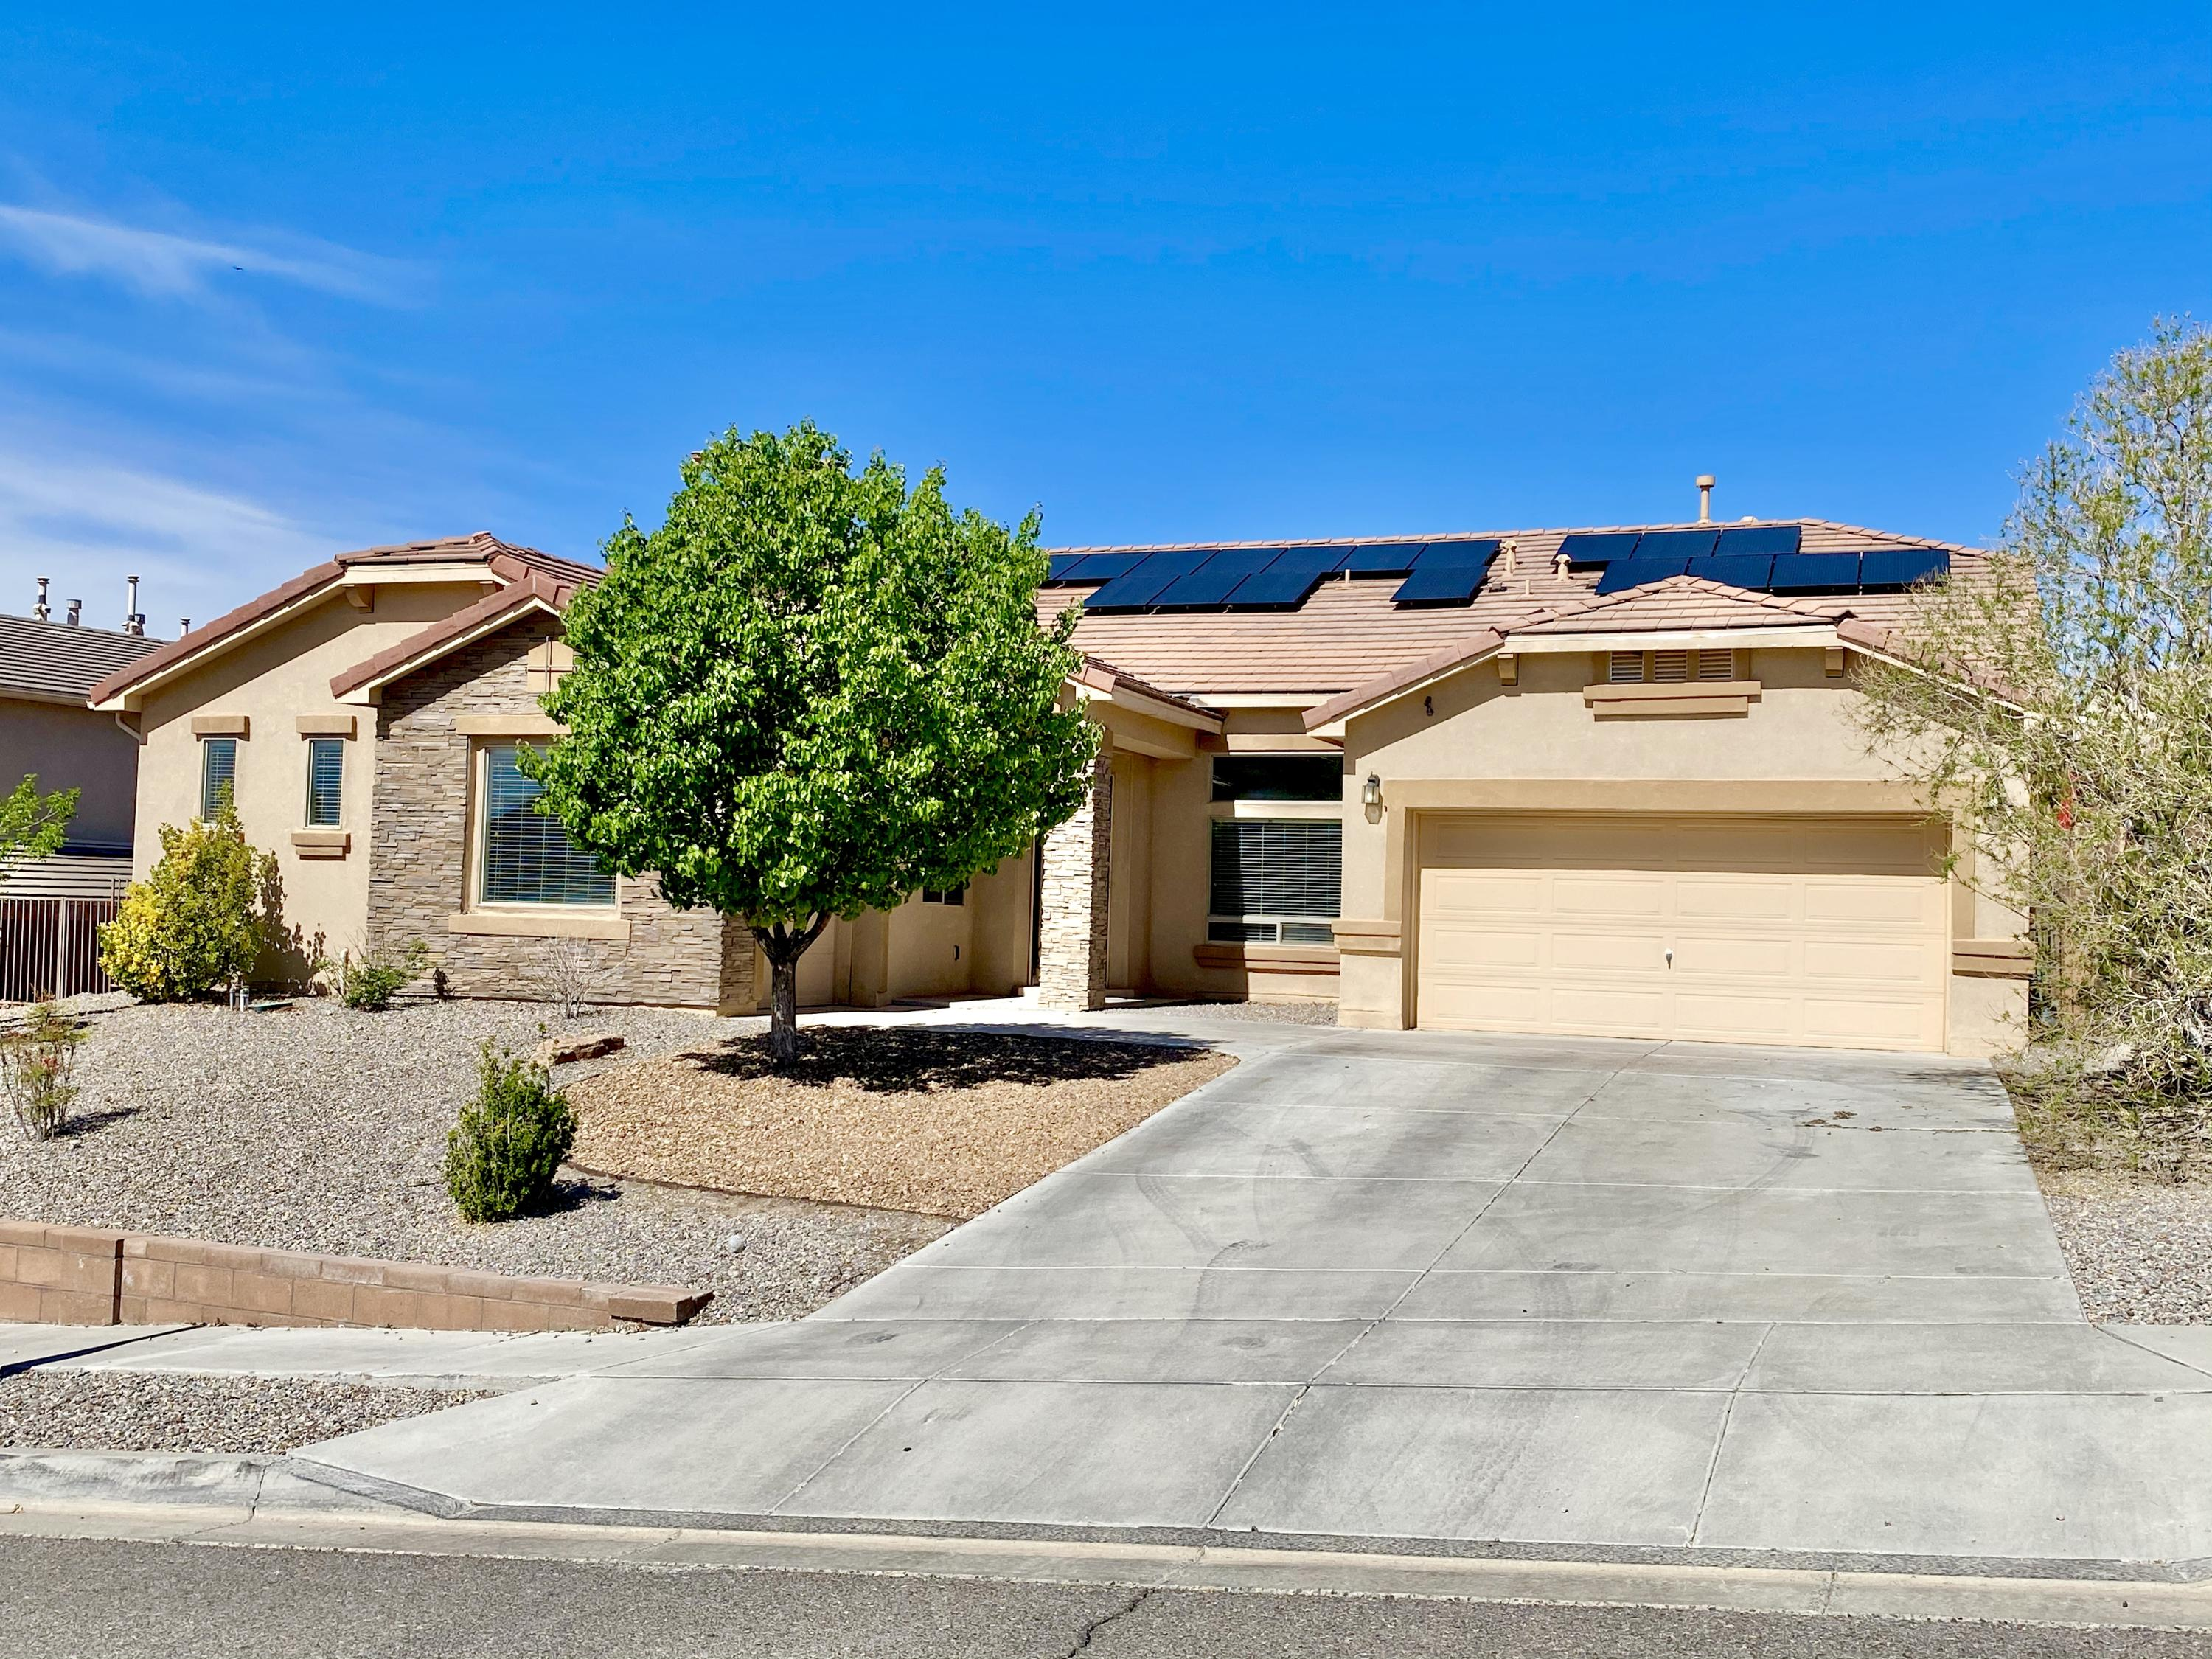 **SELLER TO CREDIT $5,000 PAINTING/LANDSCAPE CREDIT** Make an appointment to see this elegant 1 story home with recently installed solar and NEW CARPET! No Solar Lease, Average electric bill with Solar $8! The most coveted 1 story floor plan in the neighborhood, this home has 4 spacious bedrooms, 3 bathrooms, 2 car garage with BONUS room that could be converted into a study, motorcycle/exotic car garage, office etc! Brand new landscaping in front including an automatic watering system.  With double pane thermal insulated windows, double ovens, HUGE soaking tub, Samsung Family Hub fridge, a wrap around owner's suite closet & a large enclosed yard with with peaceful waterfall! Close to large park & shopping.*can do a fast closing